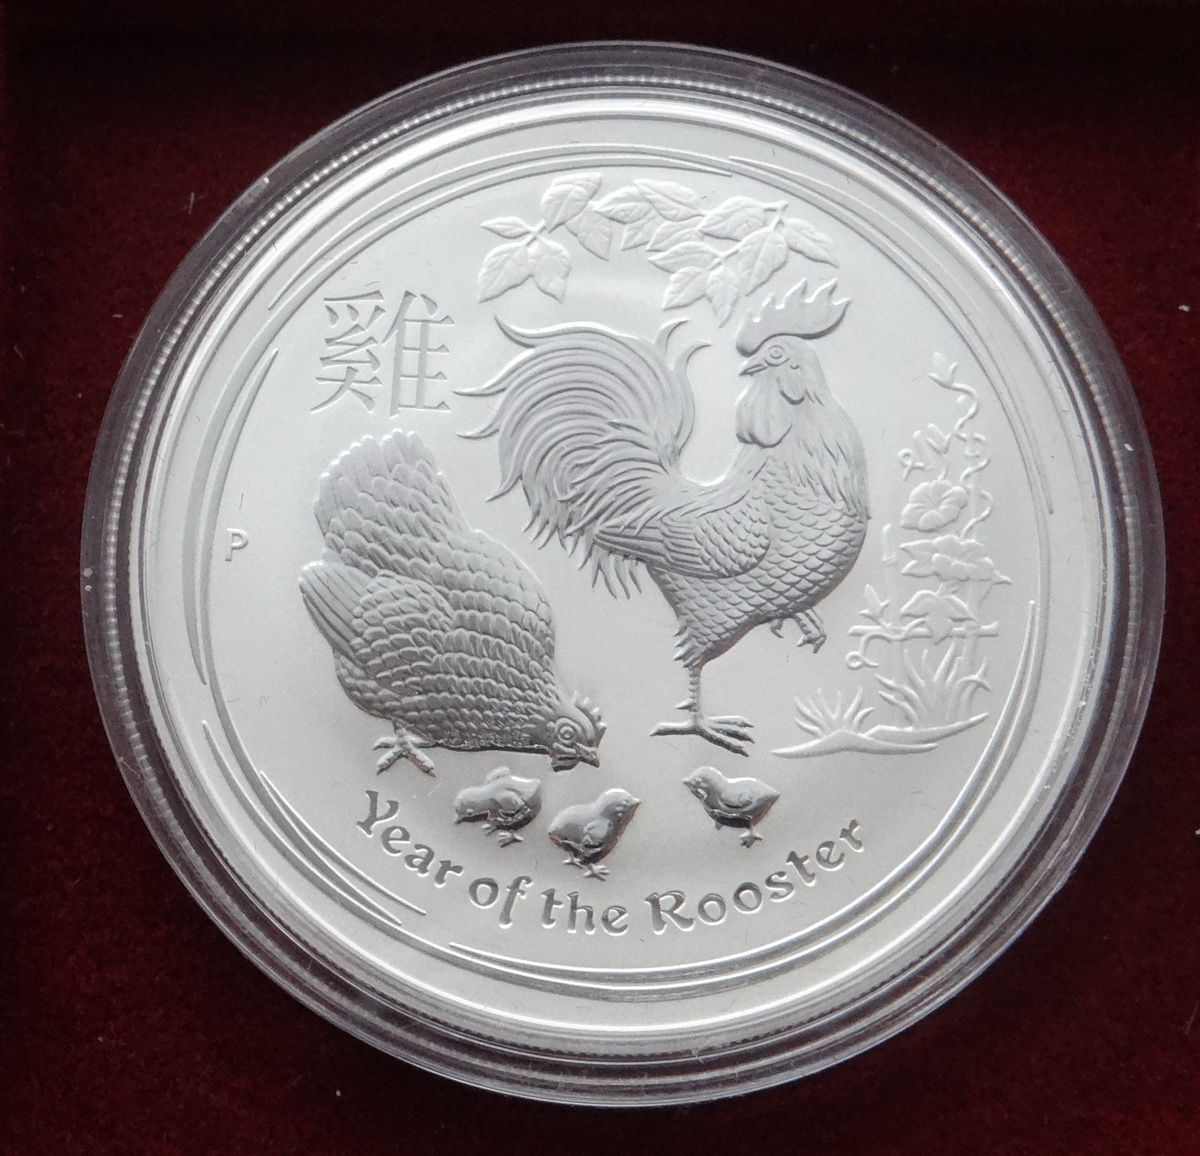 Rok Koguta (Year of the Rooster) 1 Uncja Srebra 2017